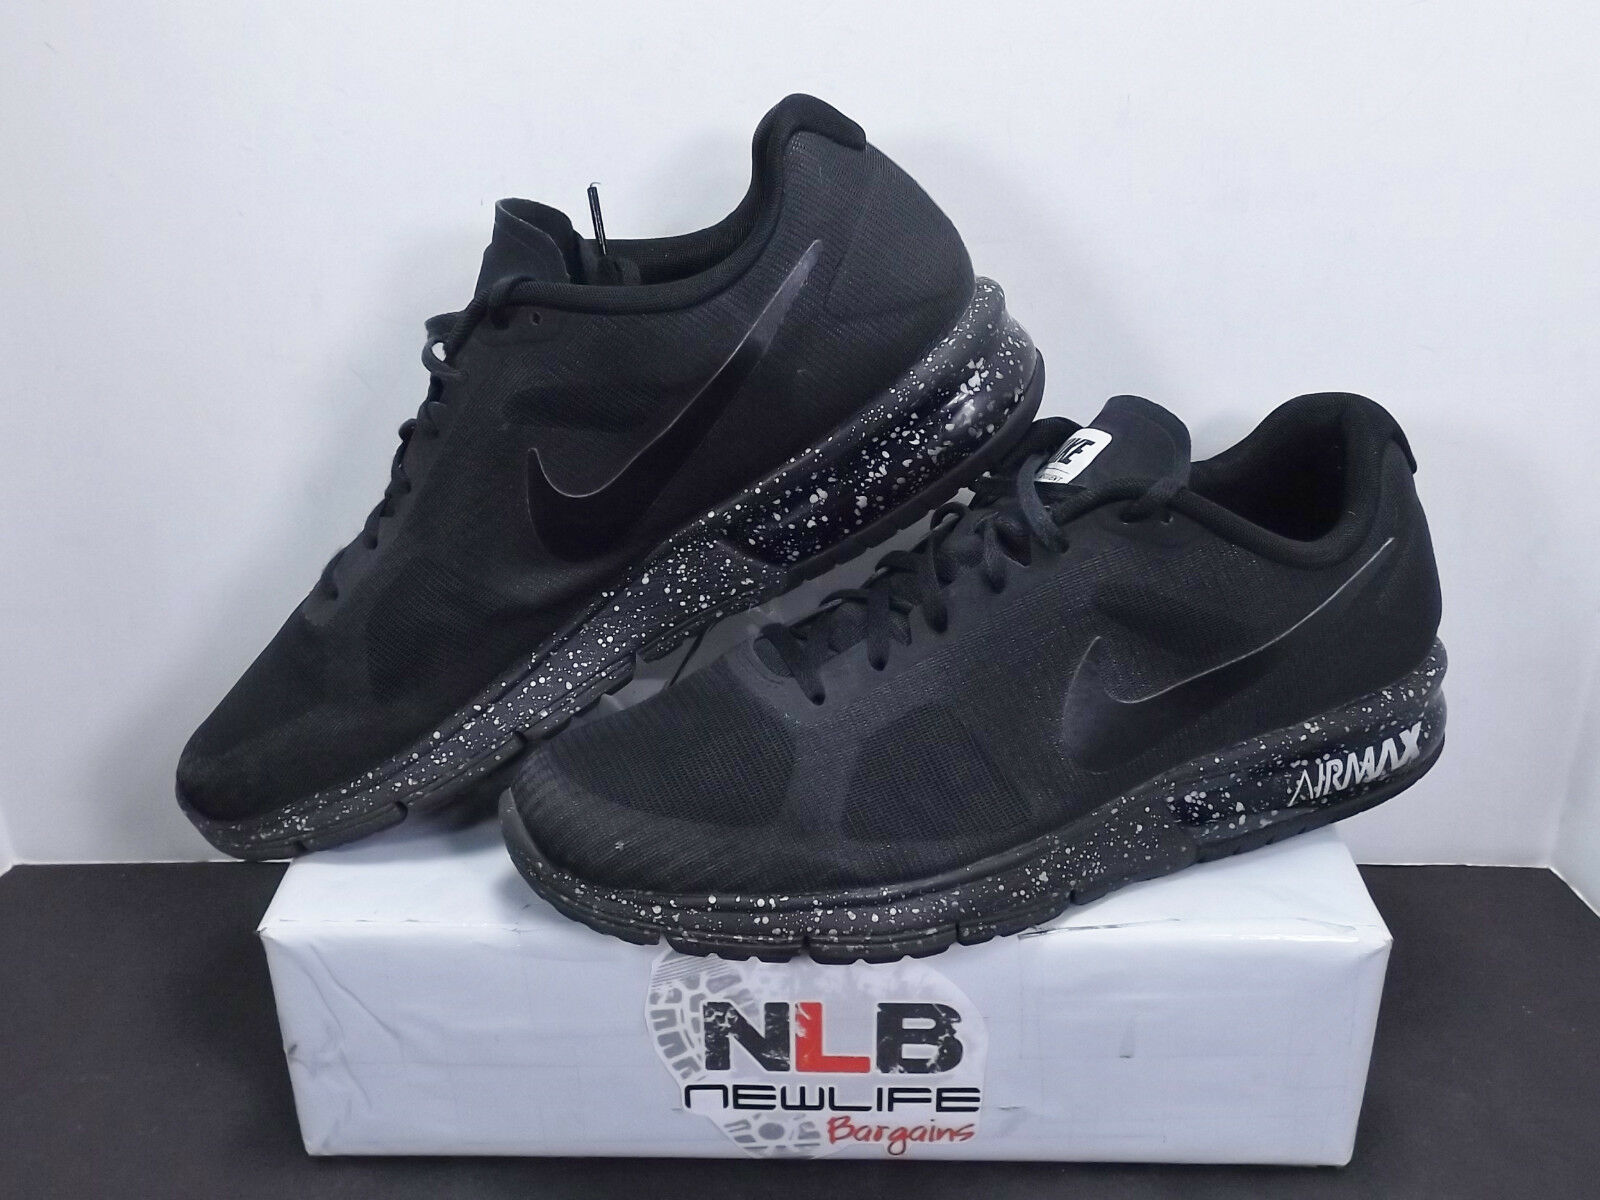 Nike Air Max Sequent PRM Black 839731-001 Men's Sz 11 CLEANKICKS